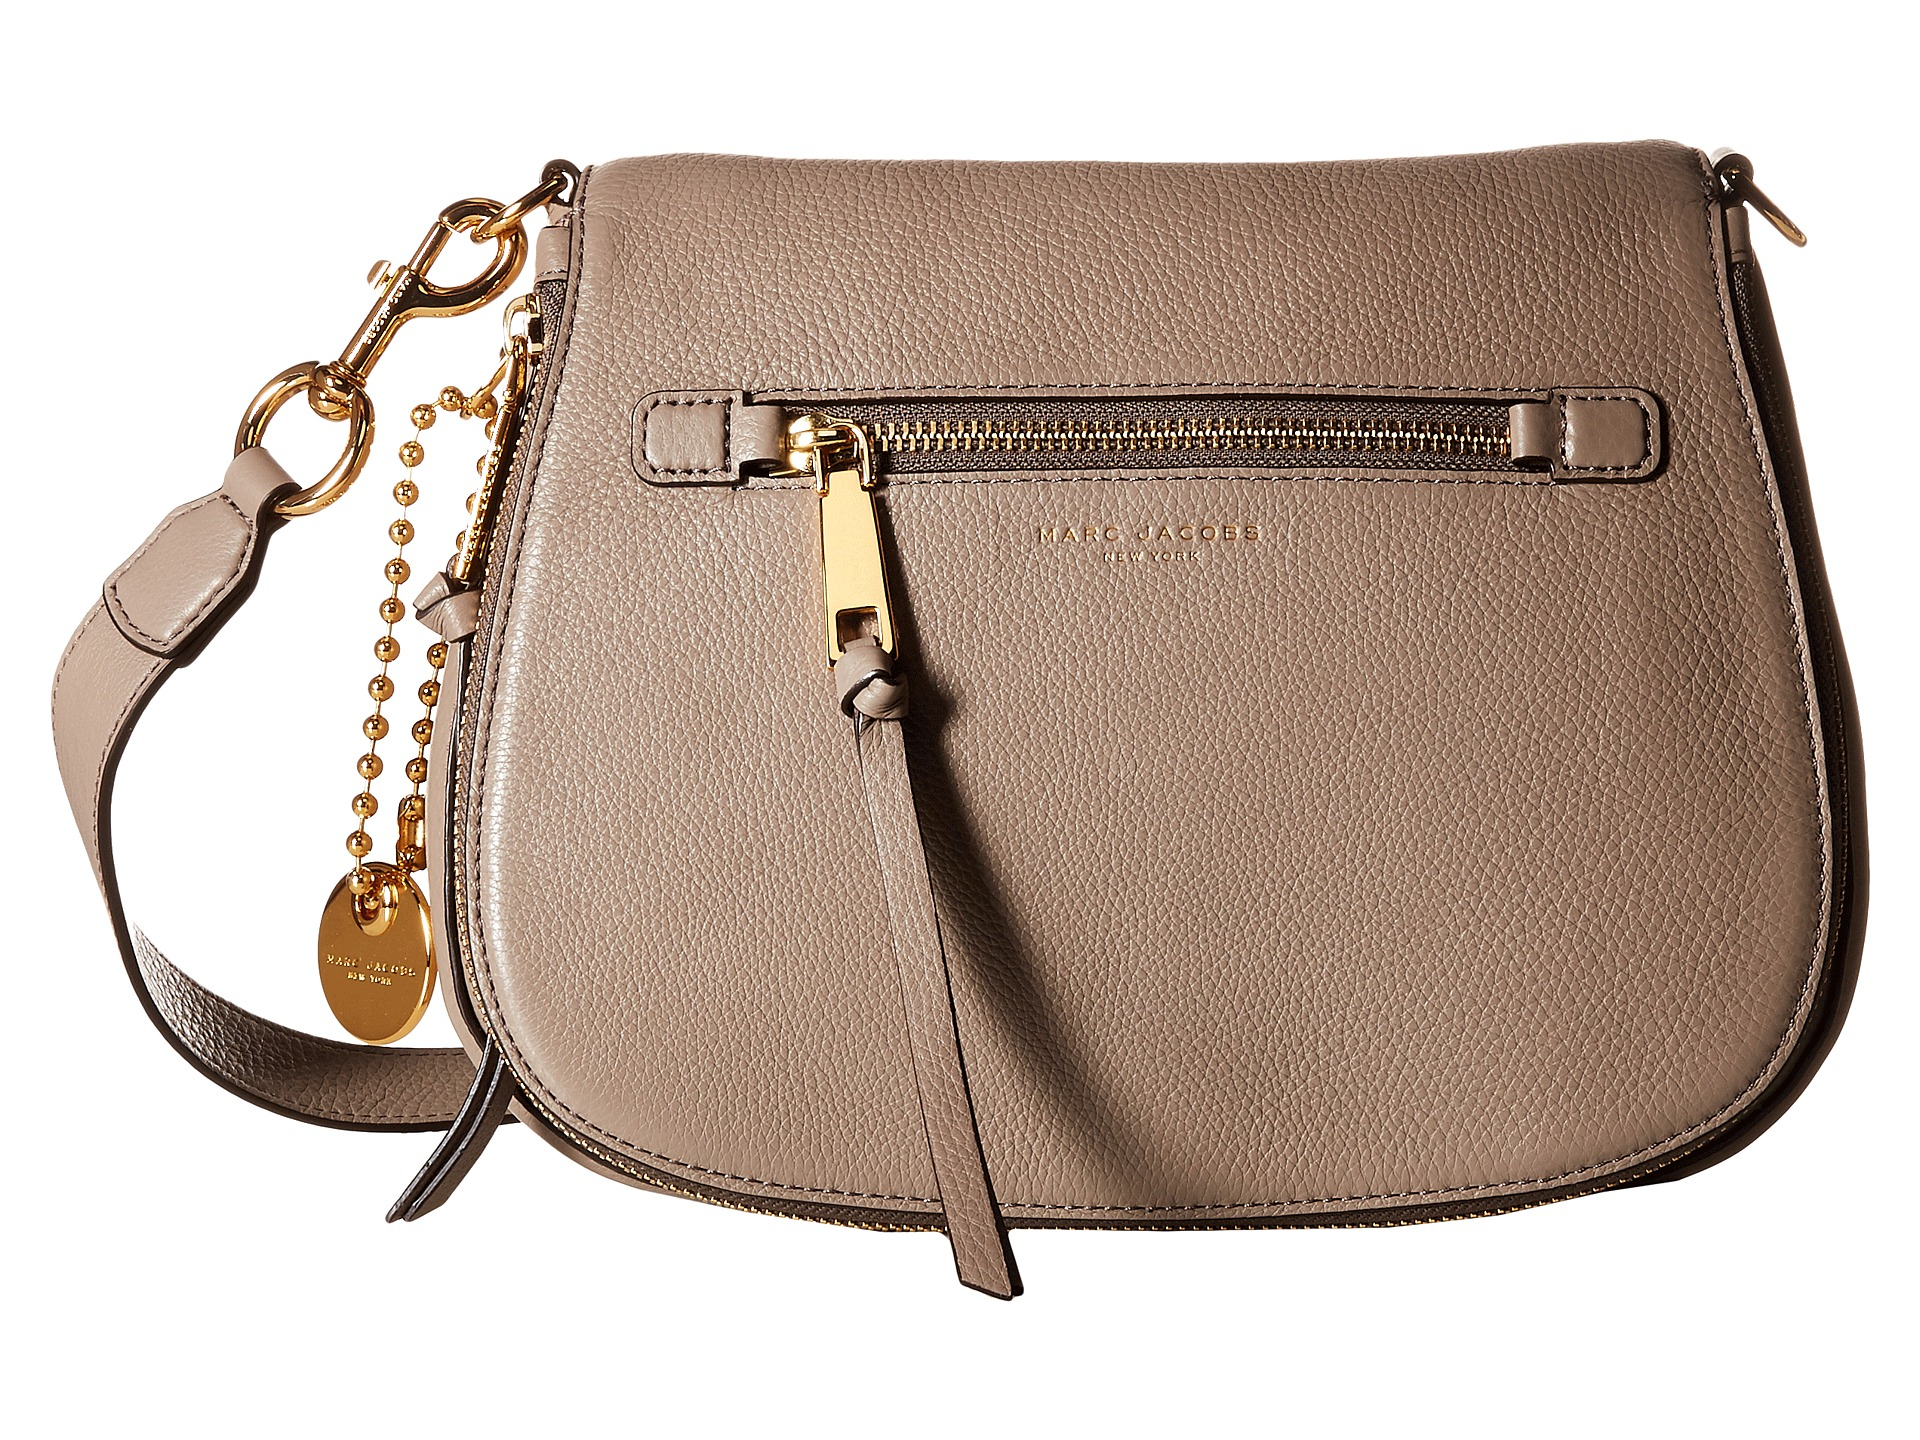 8835b952584b Gallery. Previously sold at  Zappos · Women s Saddle Bags Women s Marc  Jacobs ...